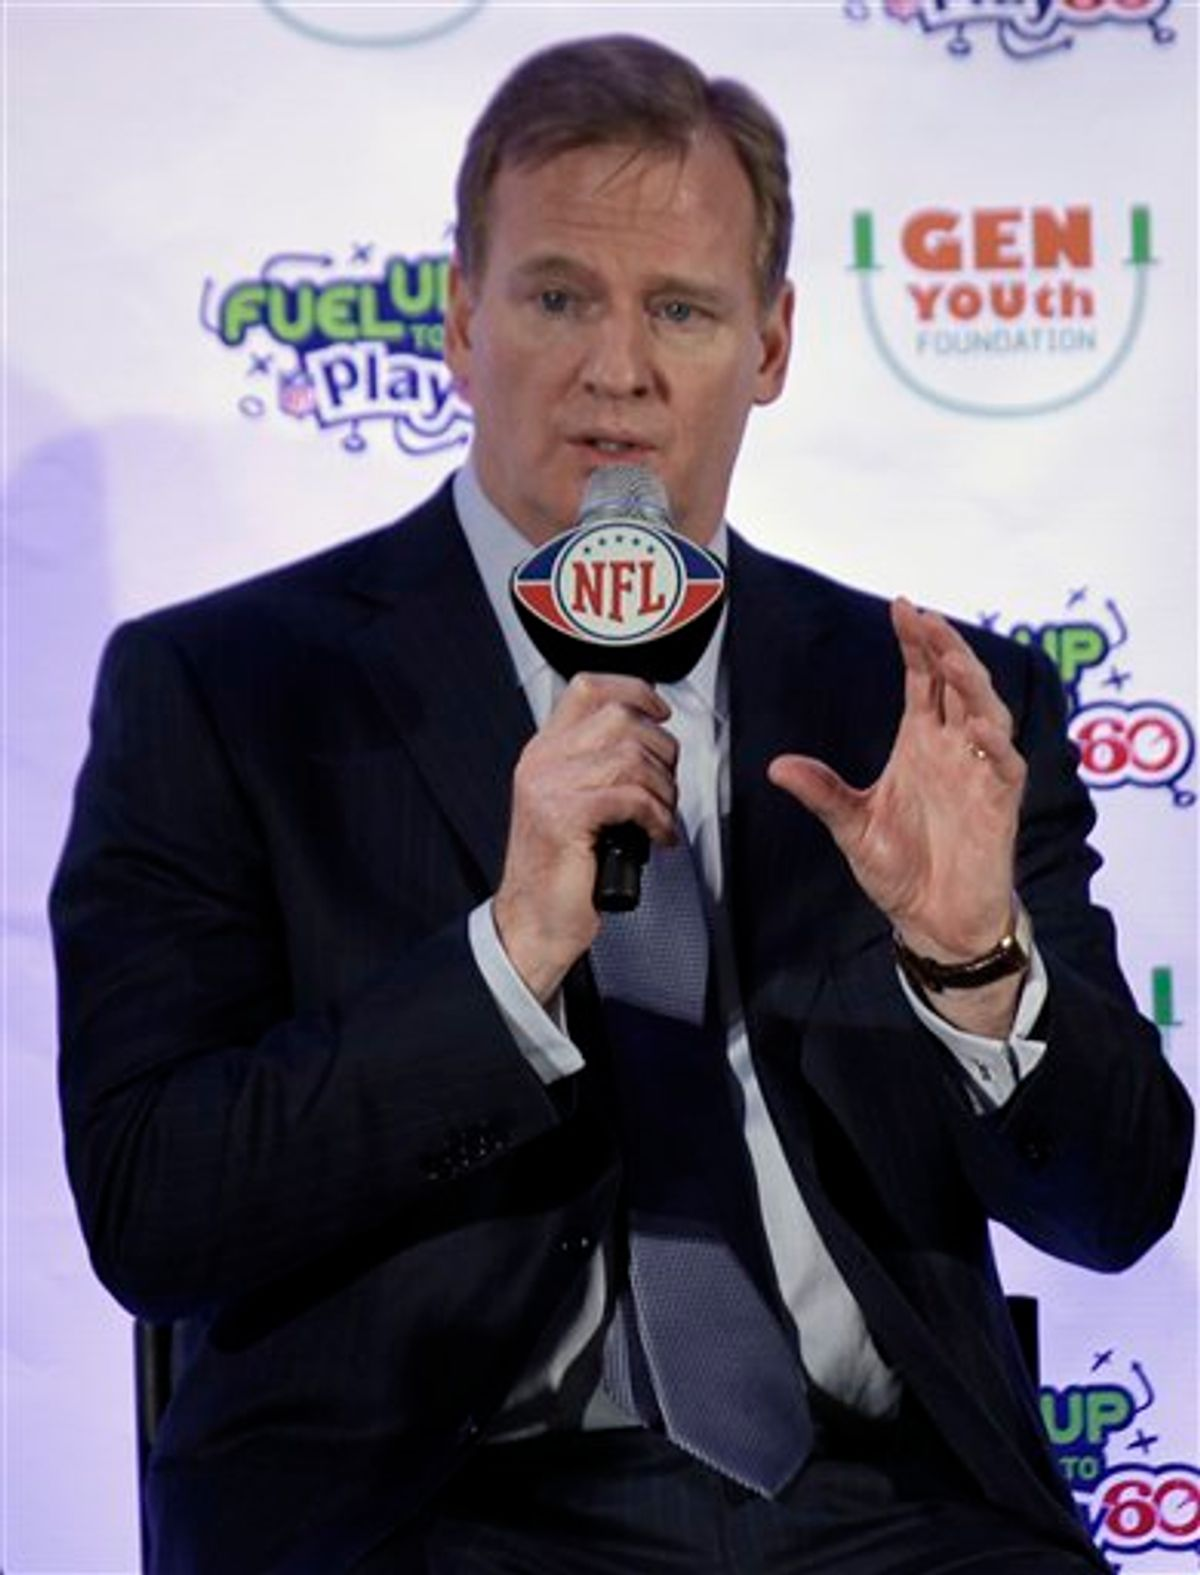 NFL Commissioner Roger Goodell answers a question about falling ice at Cowboys Stadium while taking part in a news conference to launch the Gen YOUth Foundation at the NFL football Super Bowl XLV Media Center in Dallas, Friday, Feb. 4, 2011. The Green Bay Packers and Pittsburgh Steelers will face each other in Super Bowl XLV Sunday. (AP Photo/David J. Phillip)    (AP)